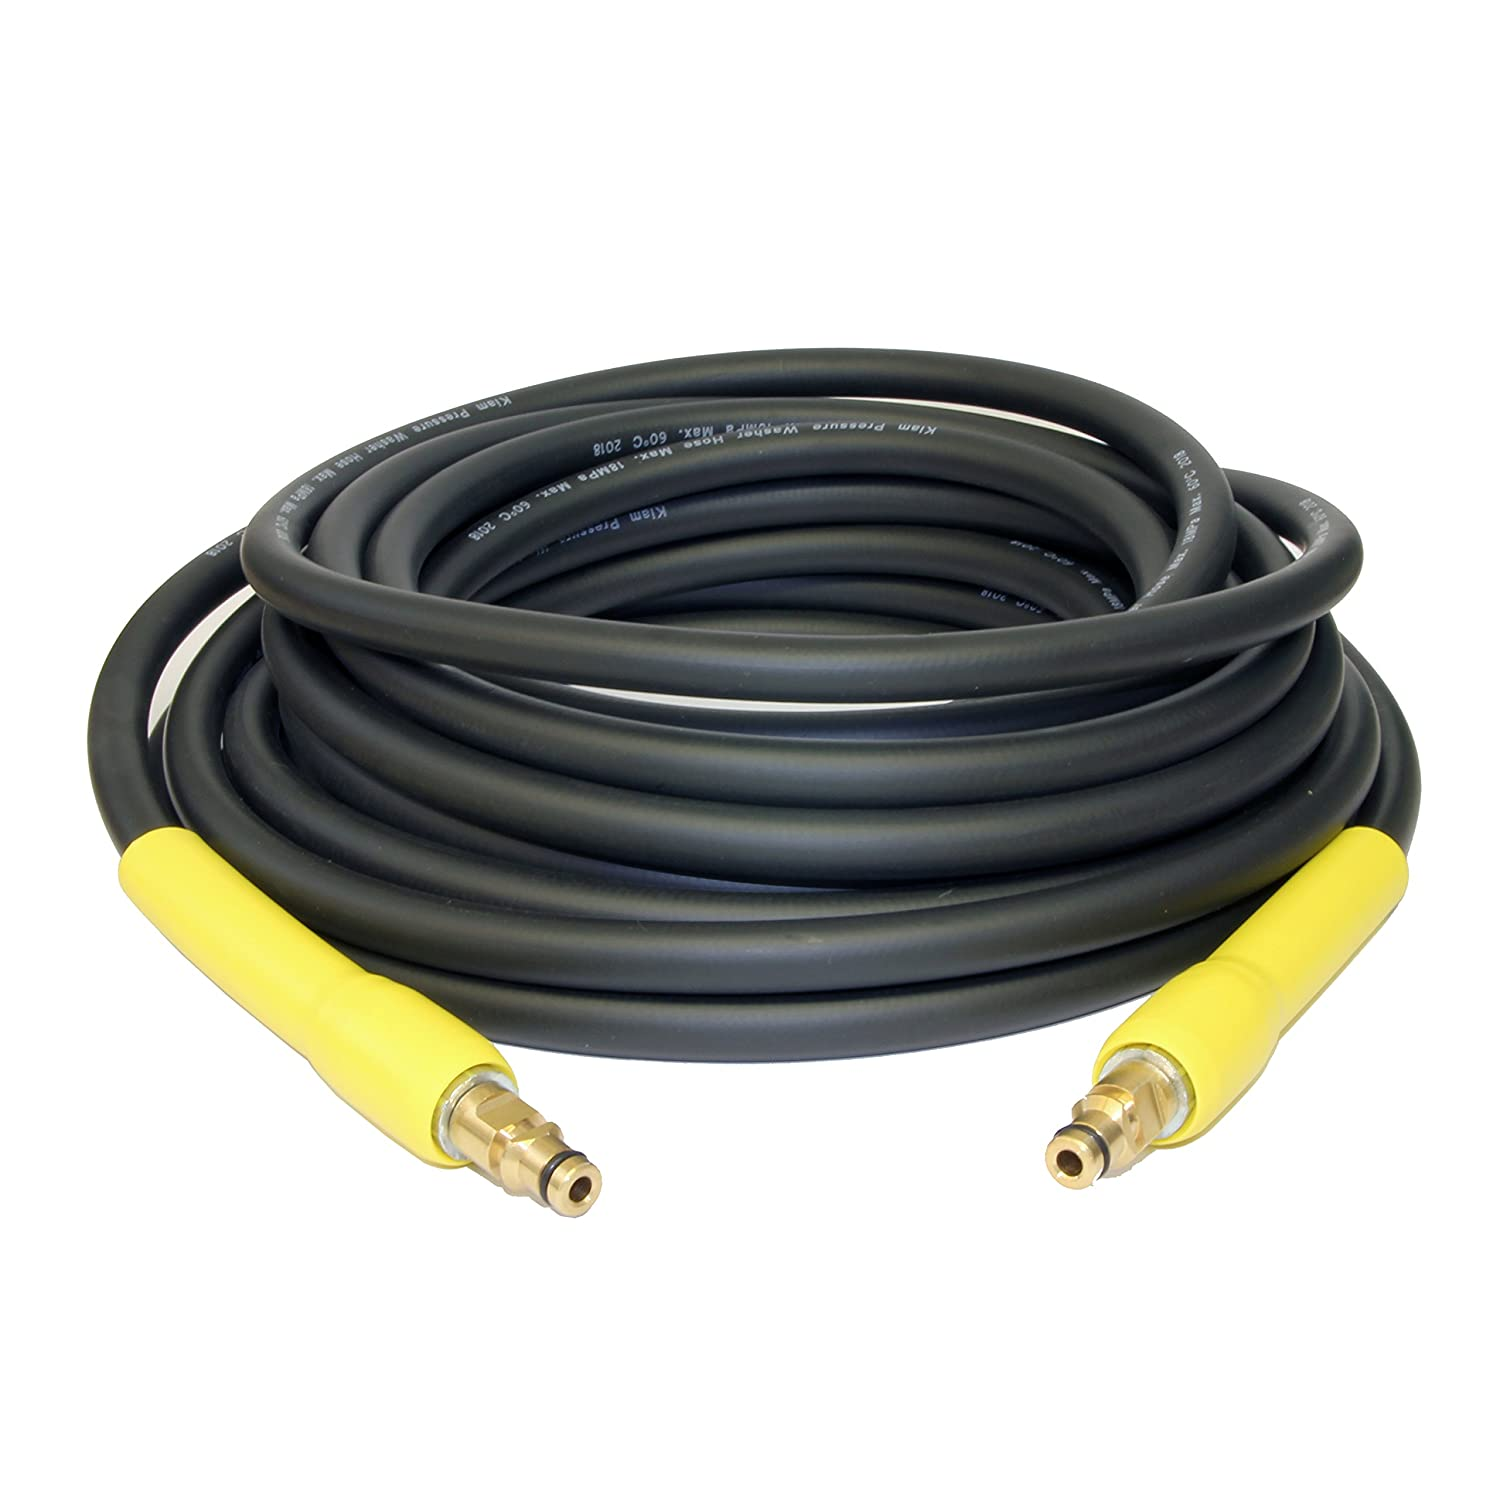 Kiam Power Products 10m High Pressure Hose Click Click Type for Karcher K Series Pressure Washers (K1, K2, K3, K4, K5, K6, K7)